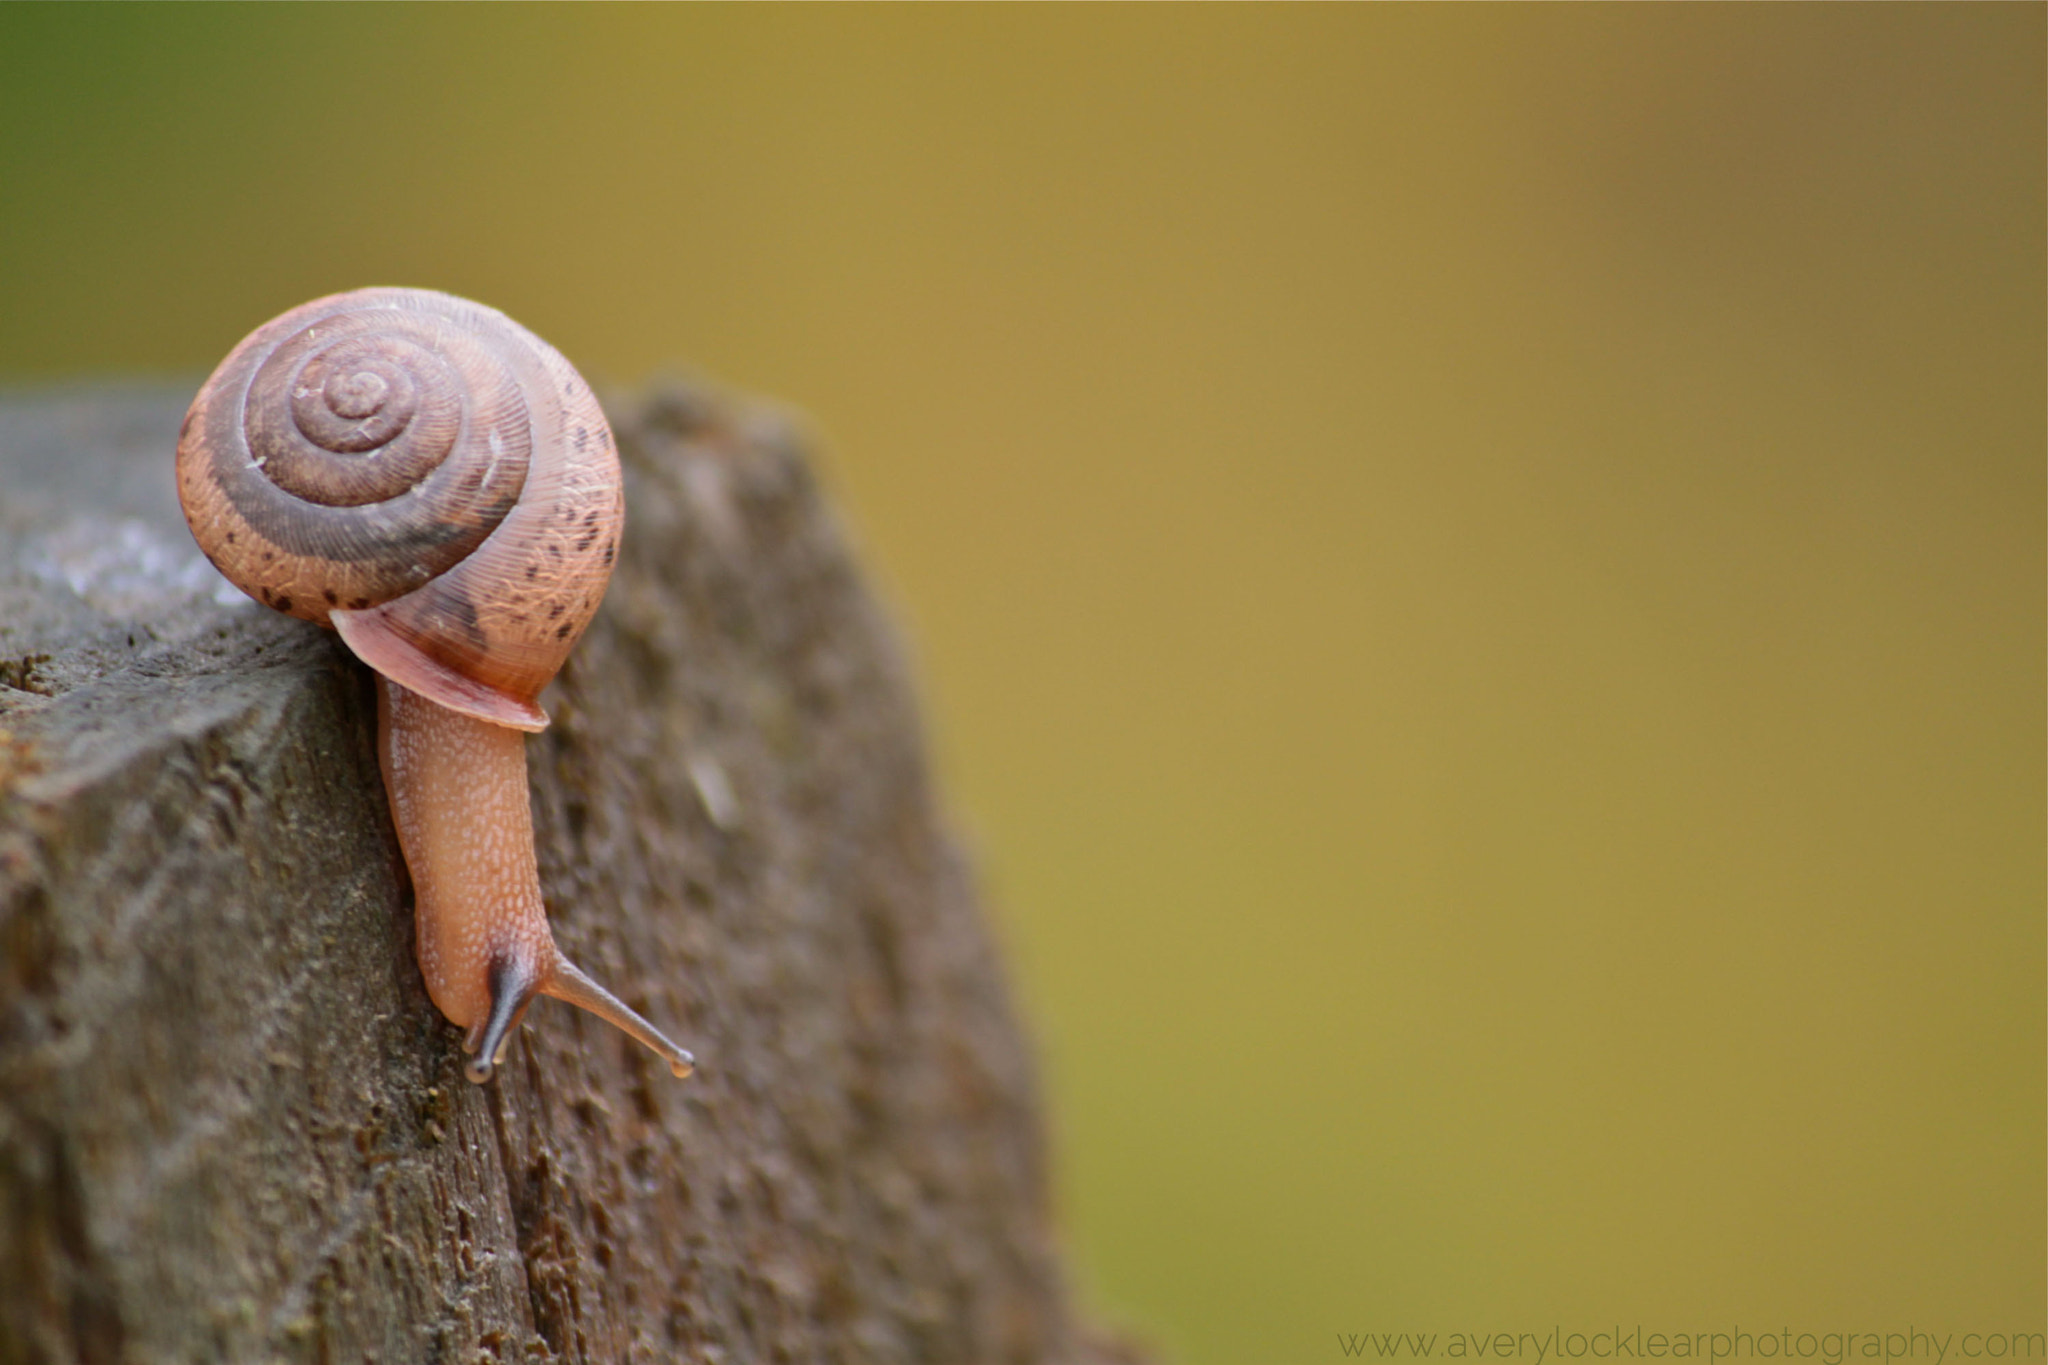 Photograph Snail by Avery Locklear on 500px